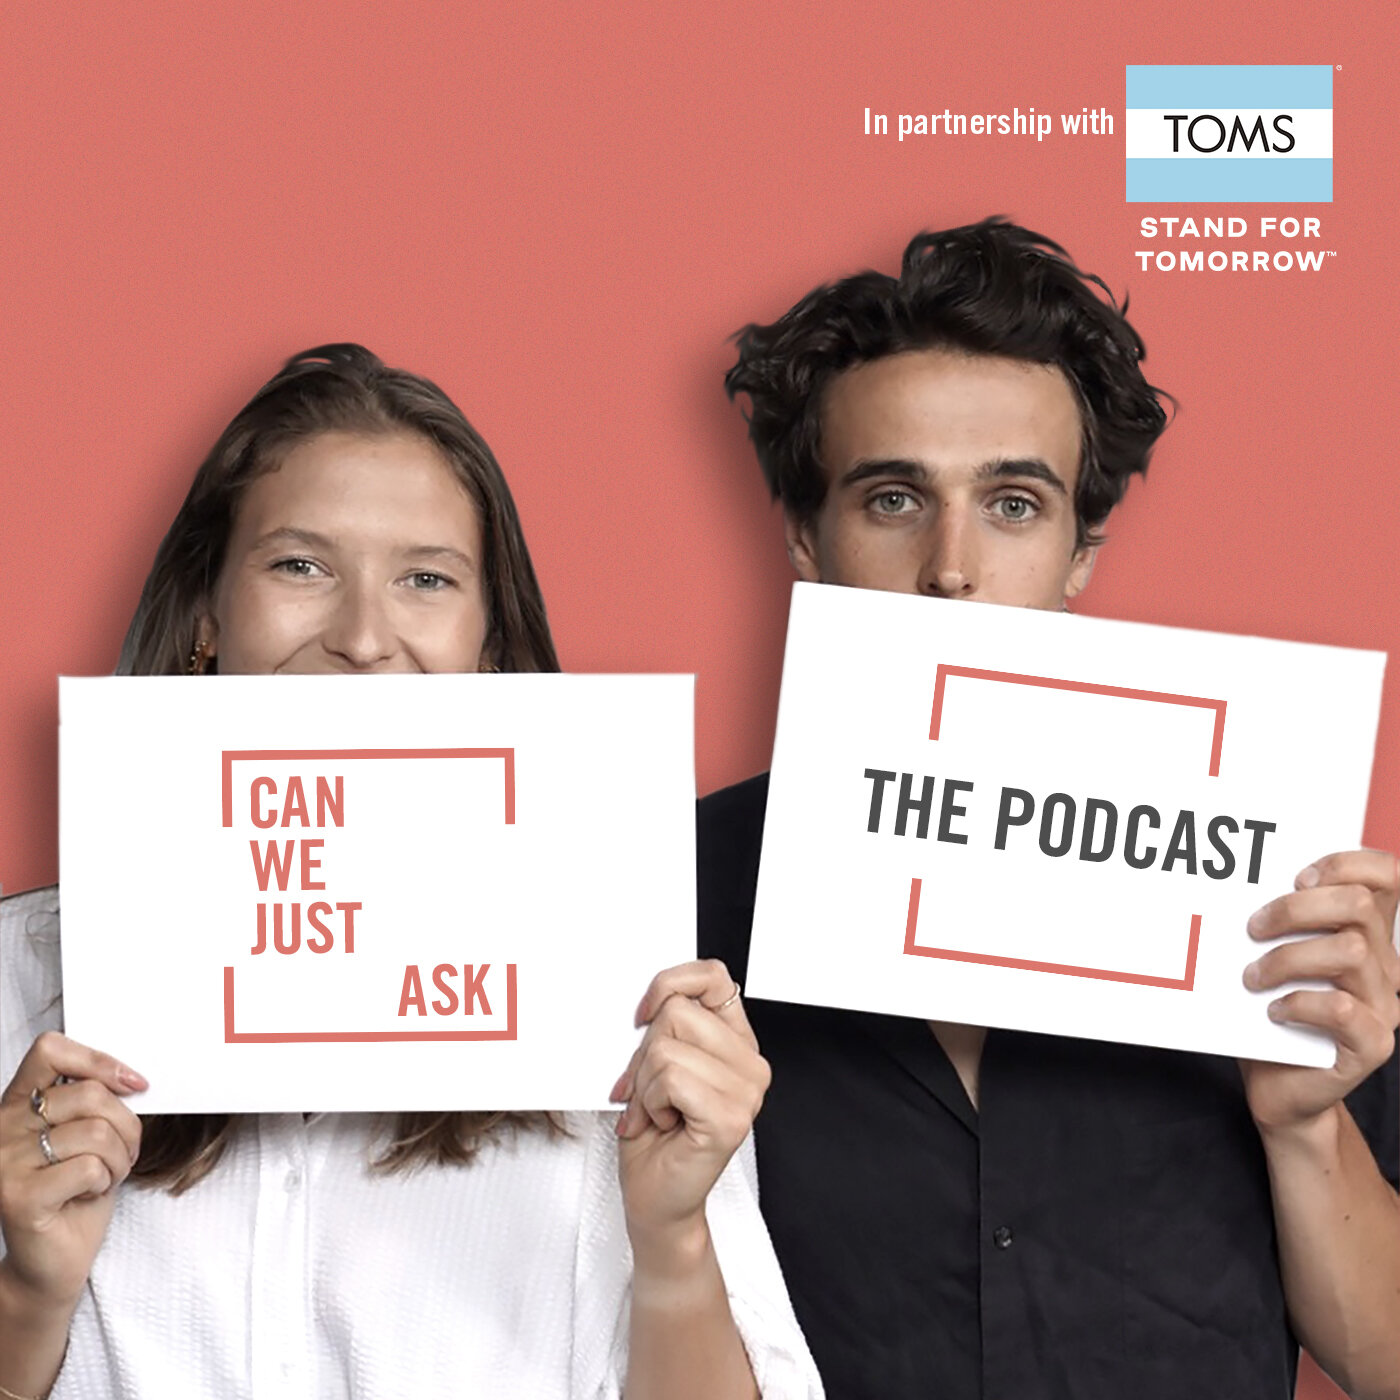 Can We Just Ask:The Podcast - Will produces and hosts the 5-star rated Can We Just Ask Podcast with his partner Annie Clarke. The show aims to start conversations that matter and to ask questions to inspire positive environmental and societal change.Through a mixture of in-depth interviews and live panel discussions, Annie and Will speak to change-makers and activists to dispel some of the myths around creating change and to encourage those listening to create their own impact.Listen Here